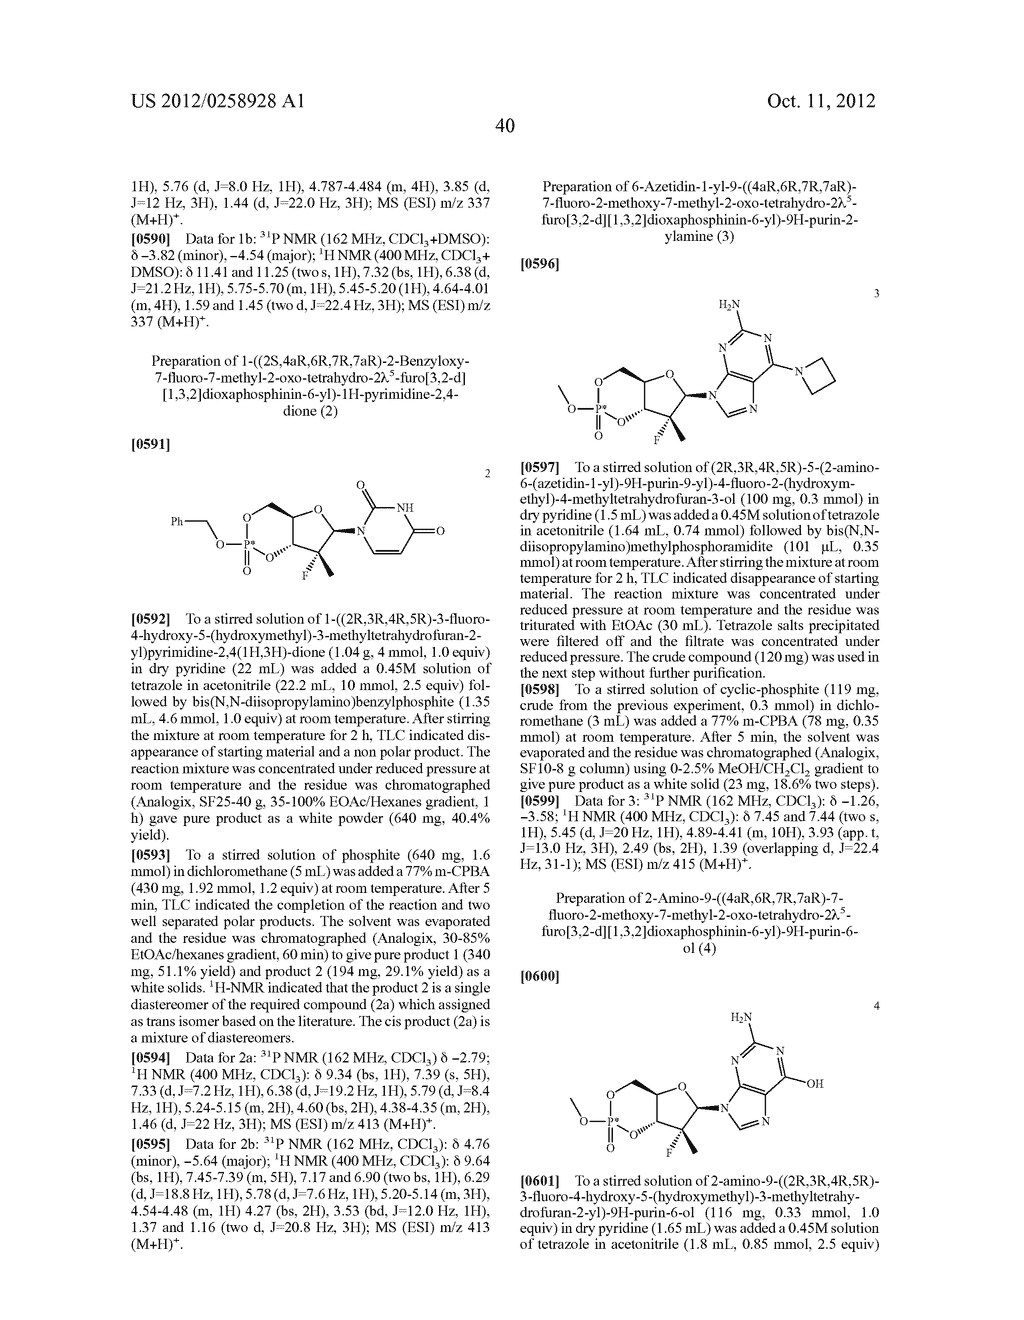 NUCLEOSIDE CYCLICPHOSPHATES - diagram, schematic, and image 41